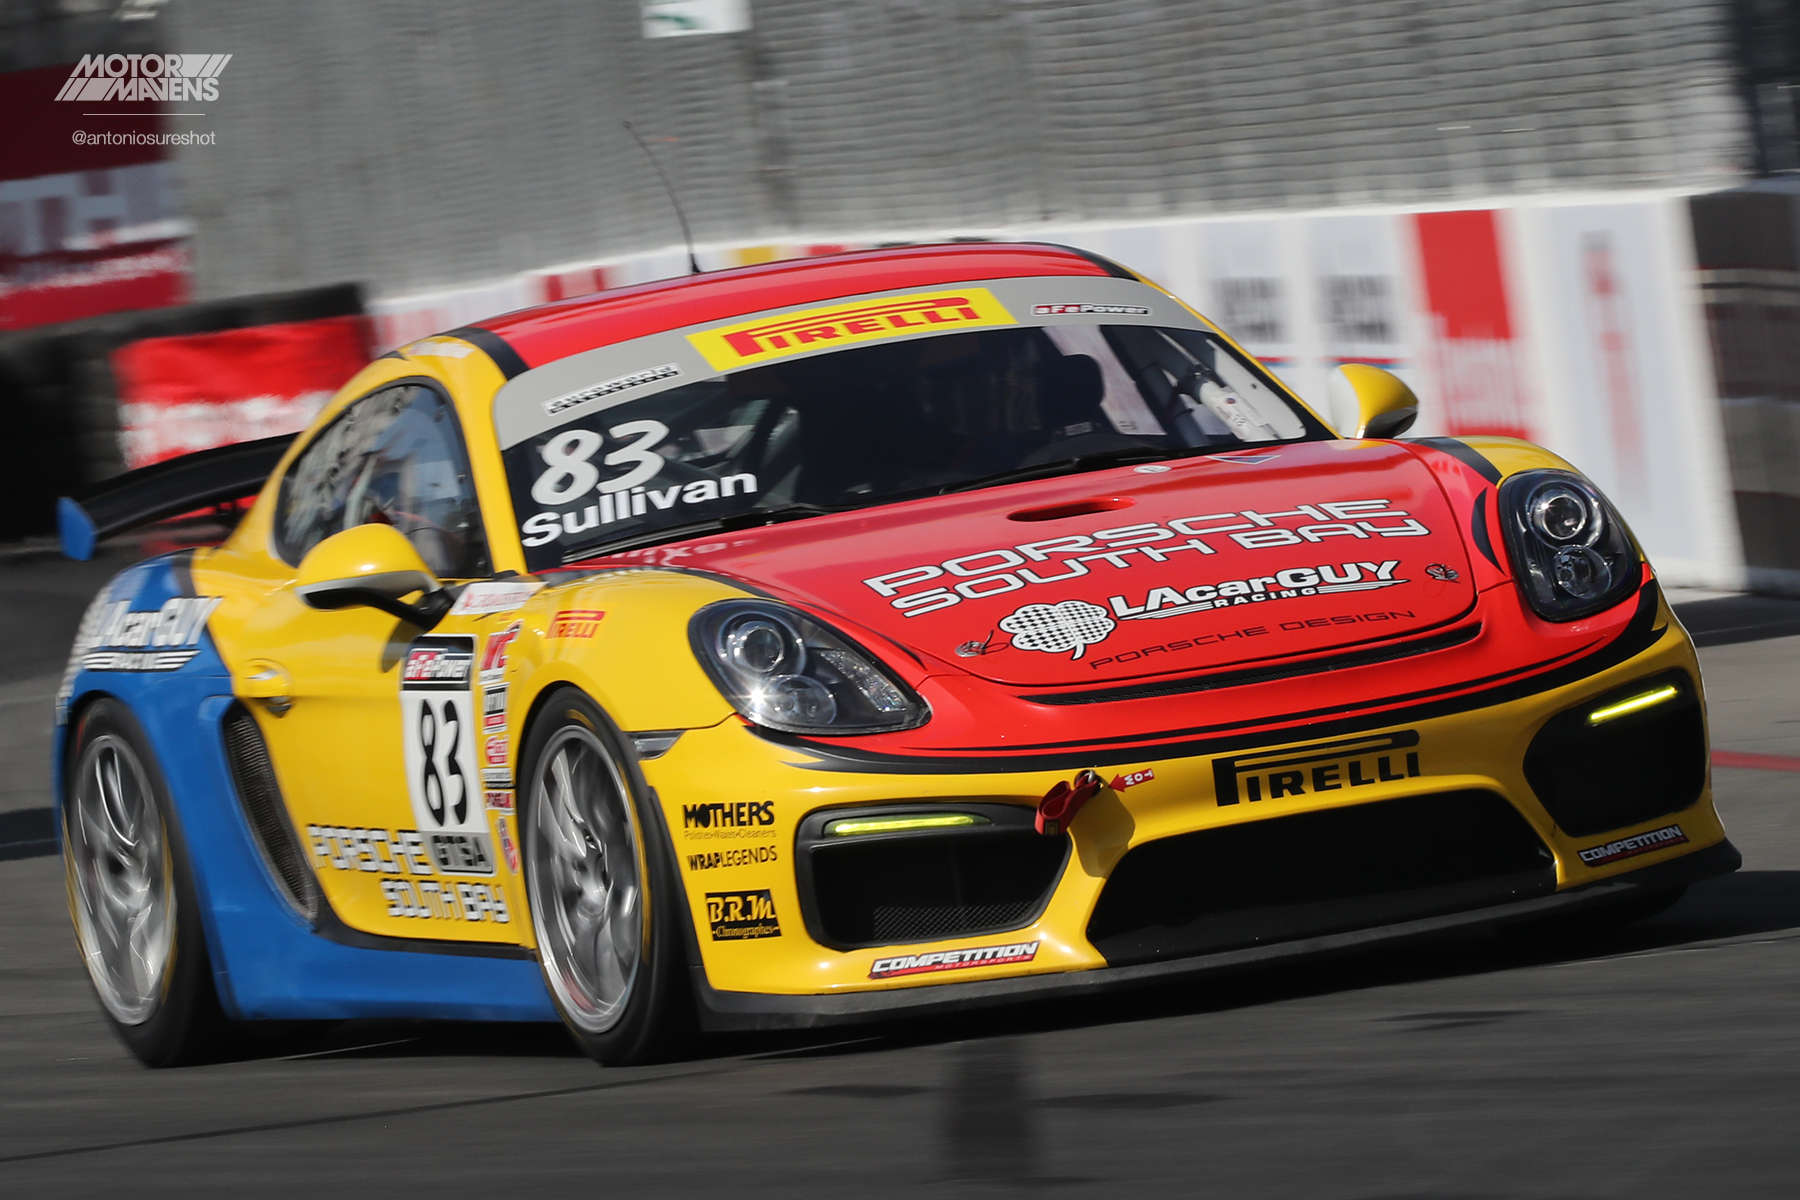 Pirelli World Challenge, Long Beach Grand Prix, Pirelli, Porsche, Cayman GT4